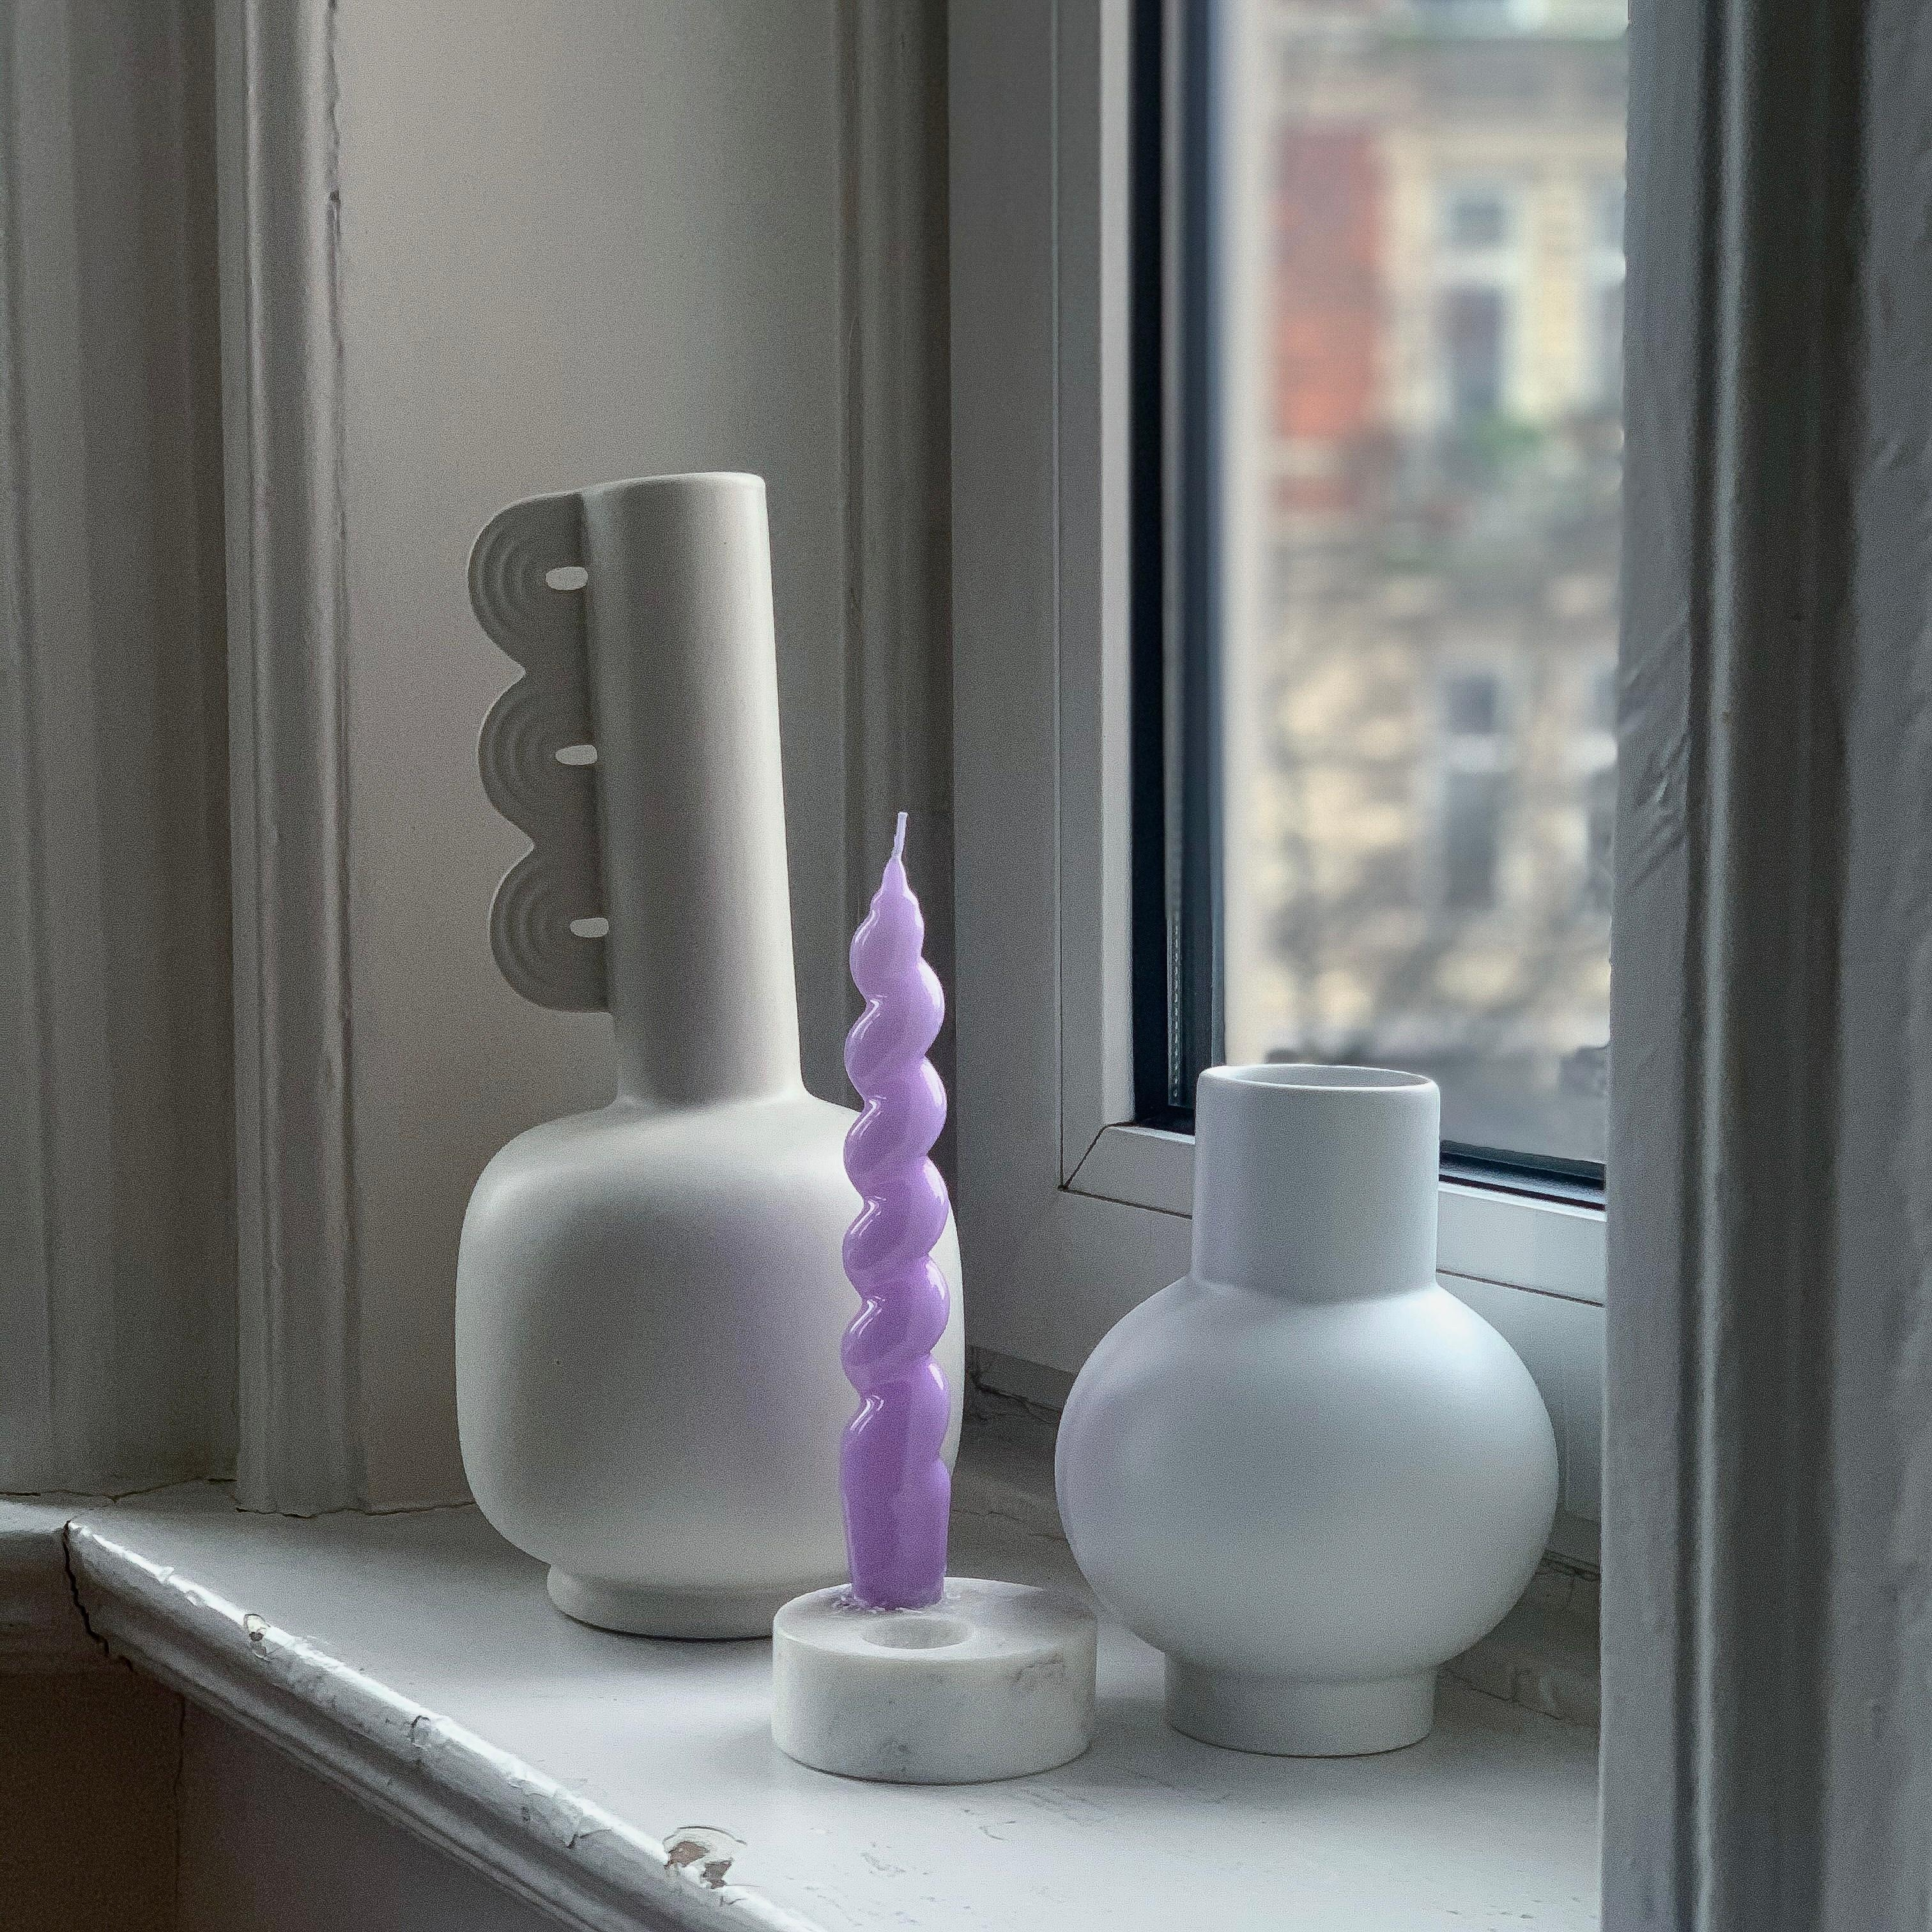 F O R M S